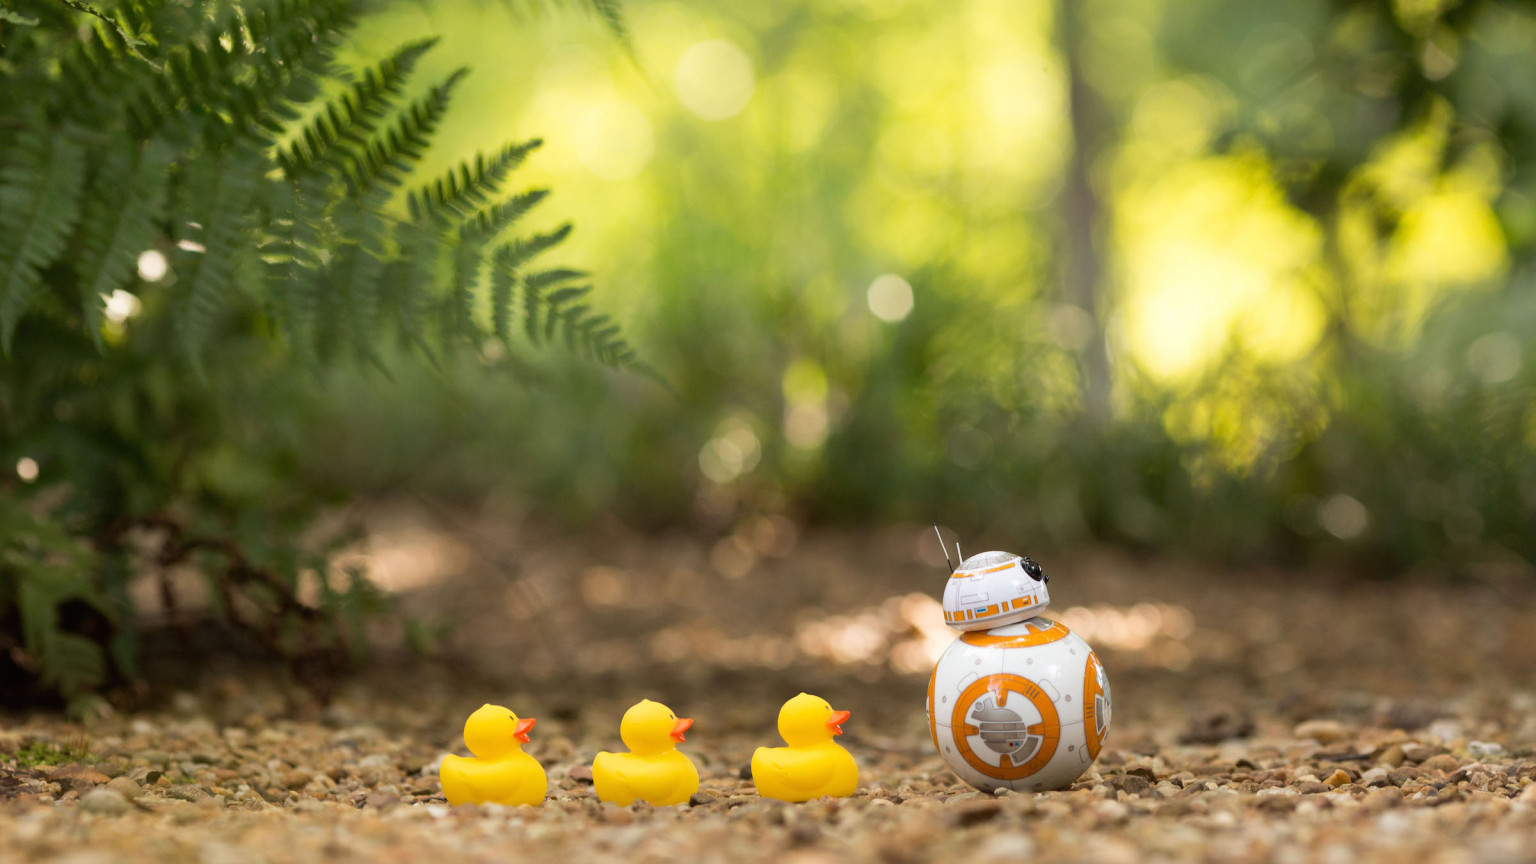 Lucky Star Cute Wallpaper A Day In The Life Of Sphero S Bb 8 Starwars Com